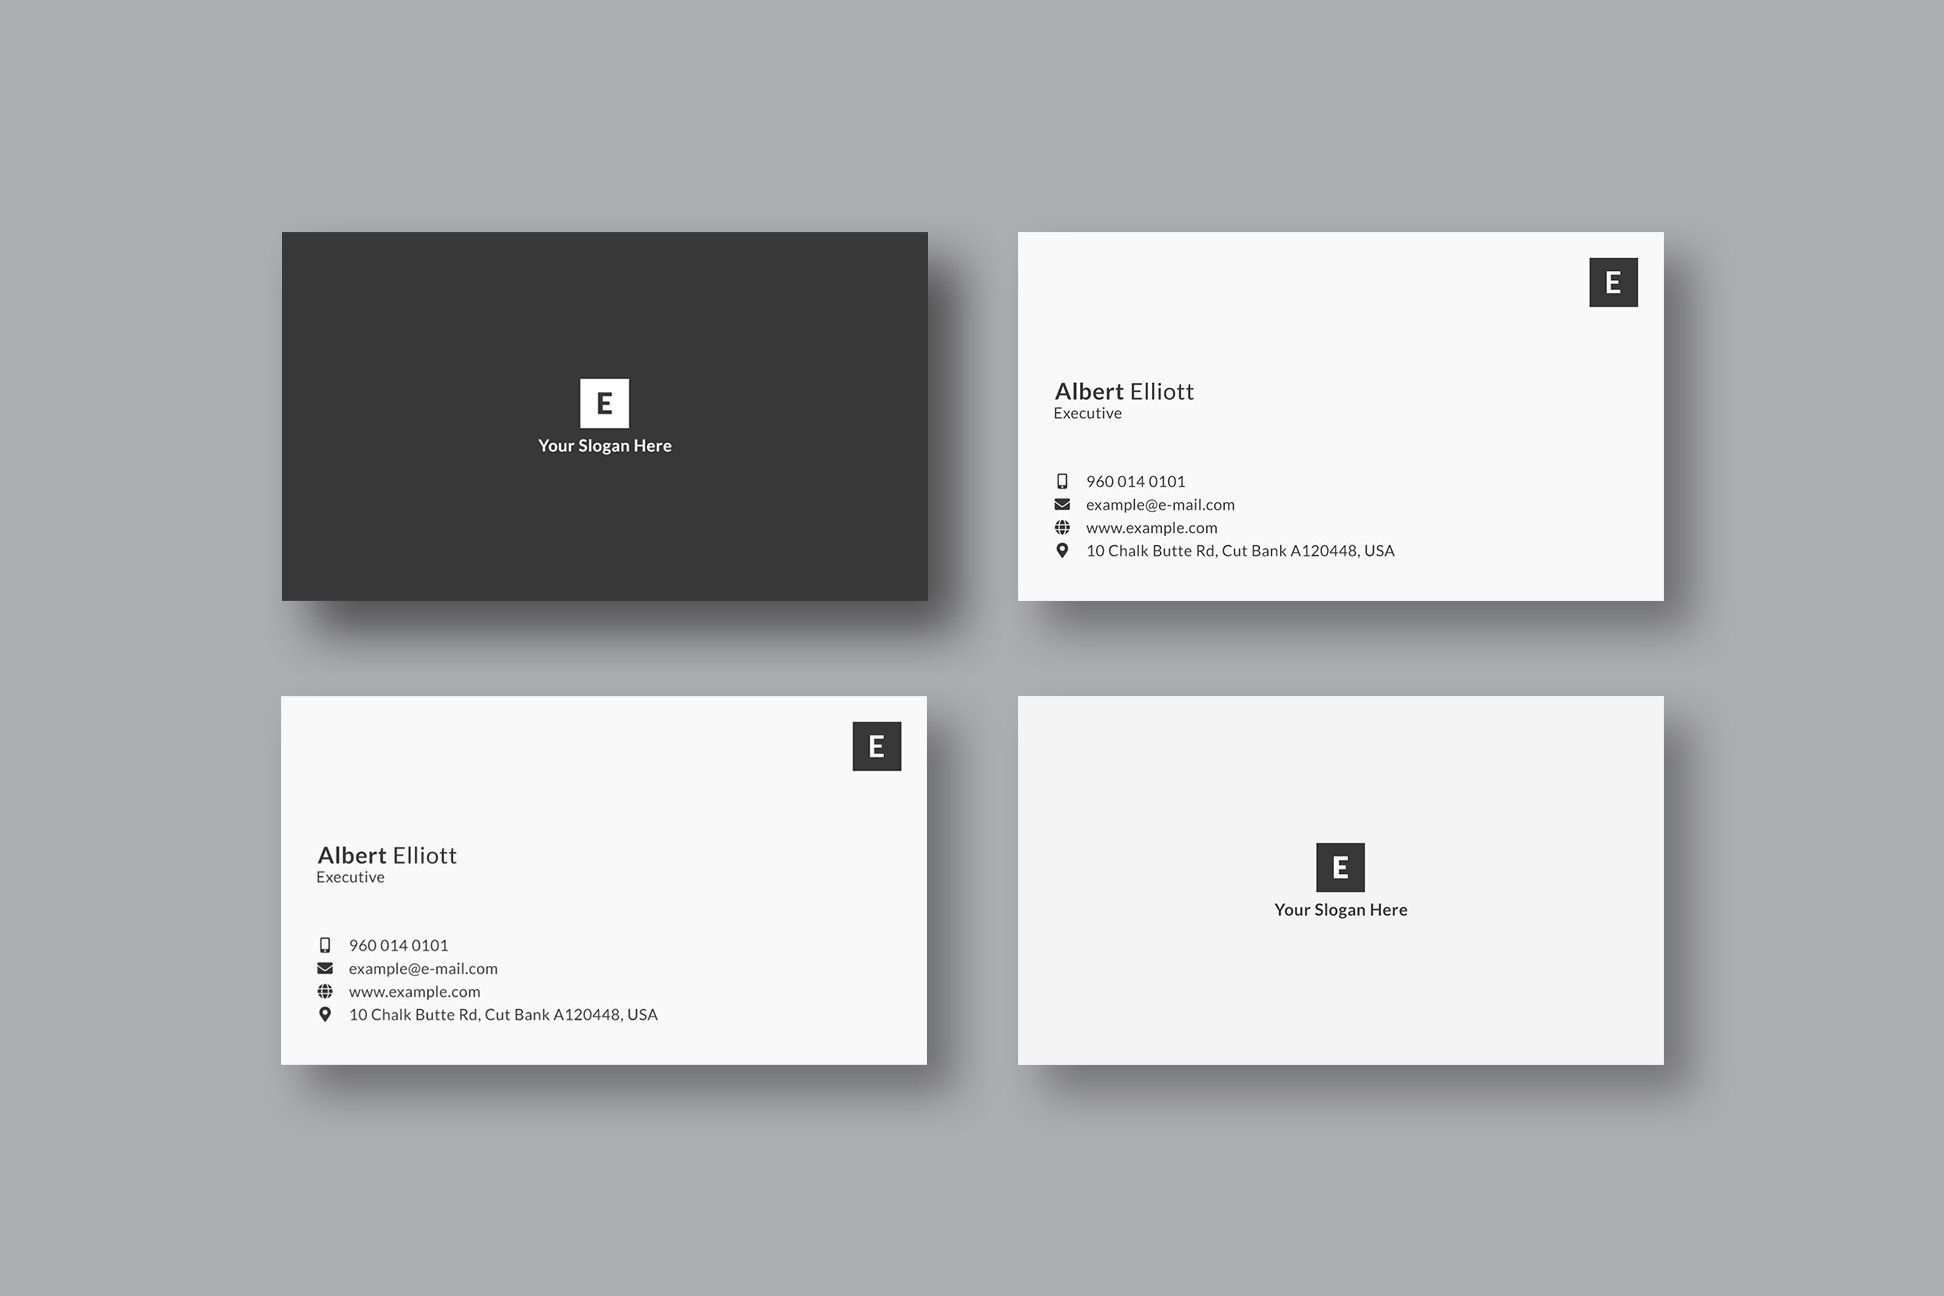 Business Card Business Cards Creative Templates Business Cards Simple Business Card Design Minimal